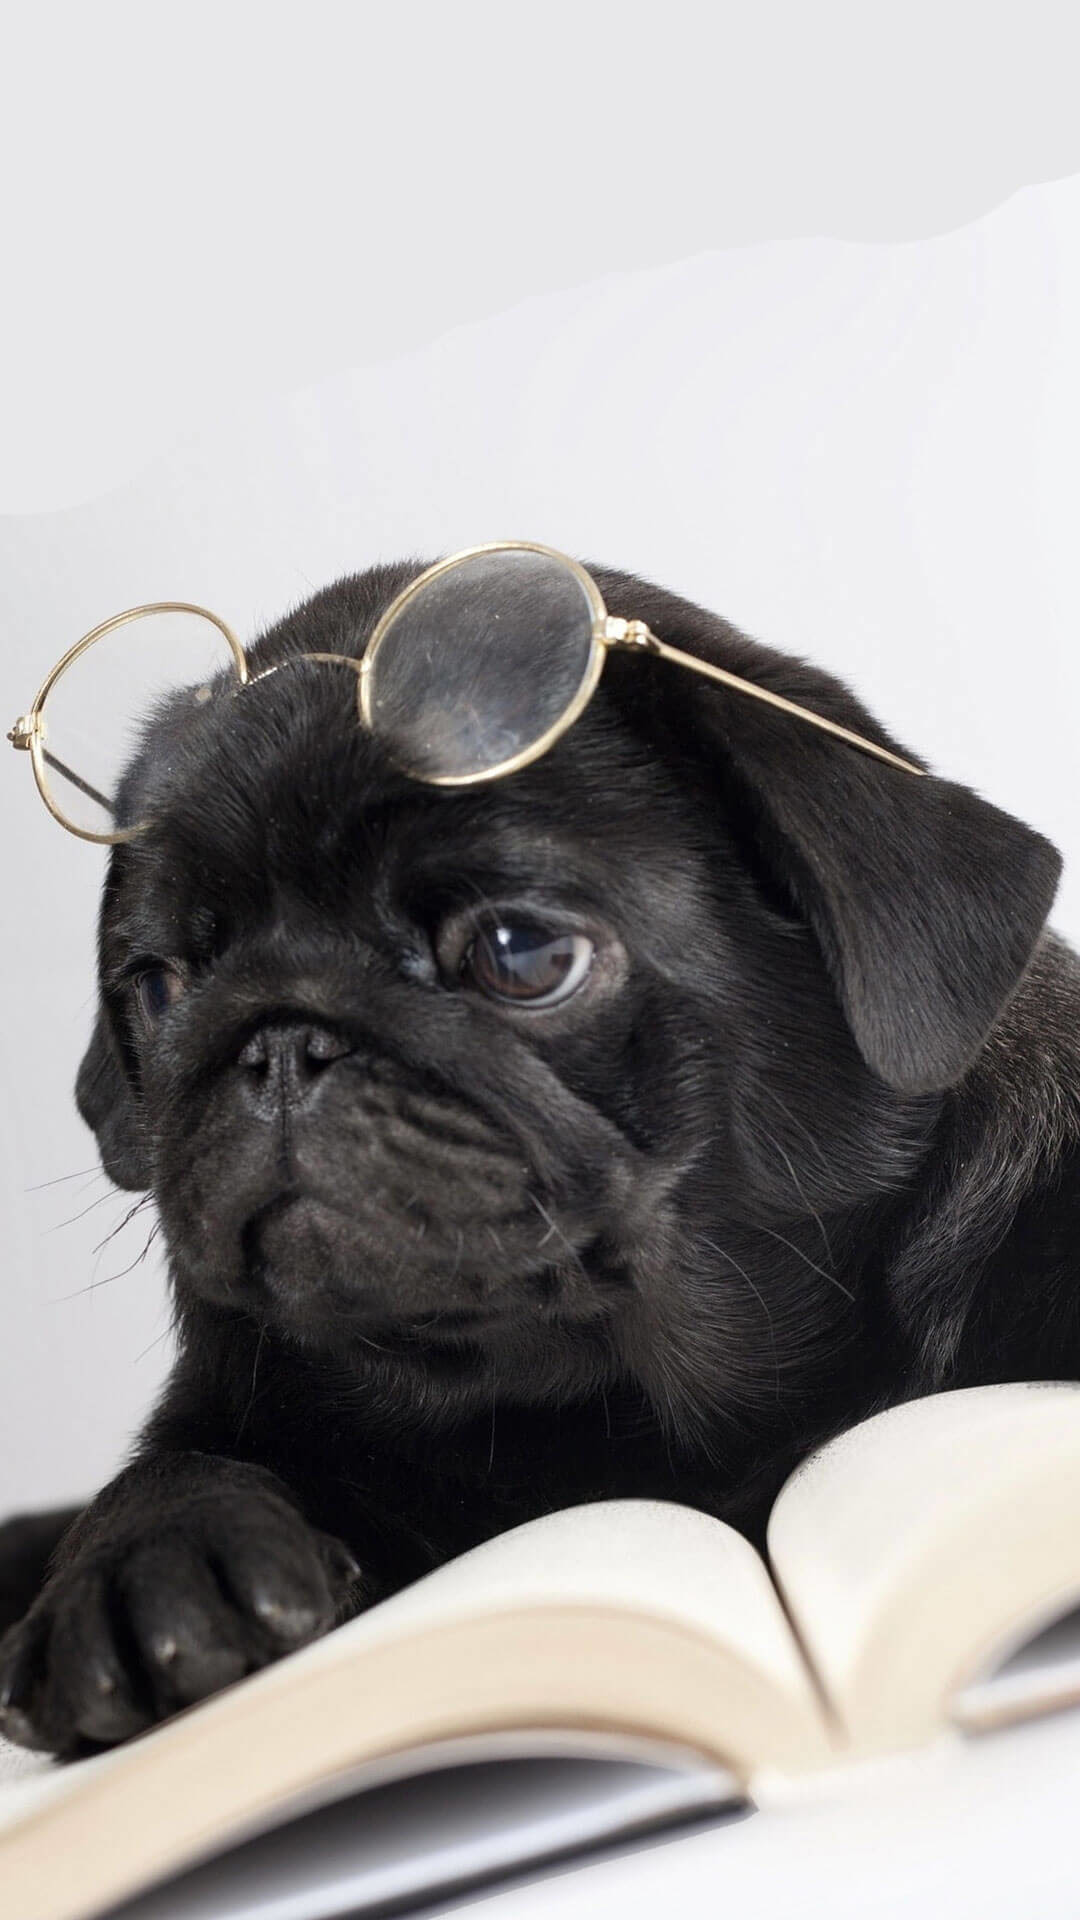 Funny Pug Pictures Wallpaper (75+ images)